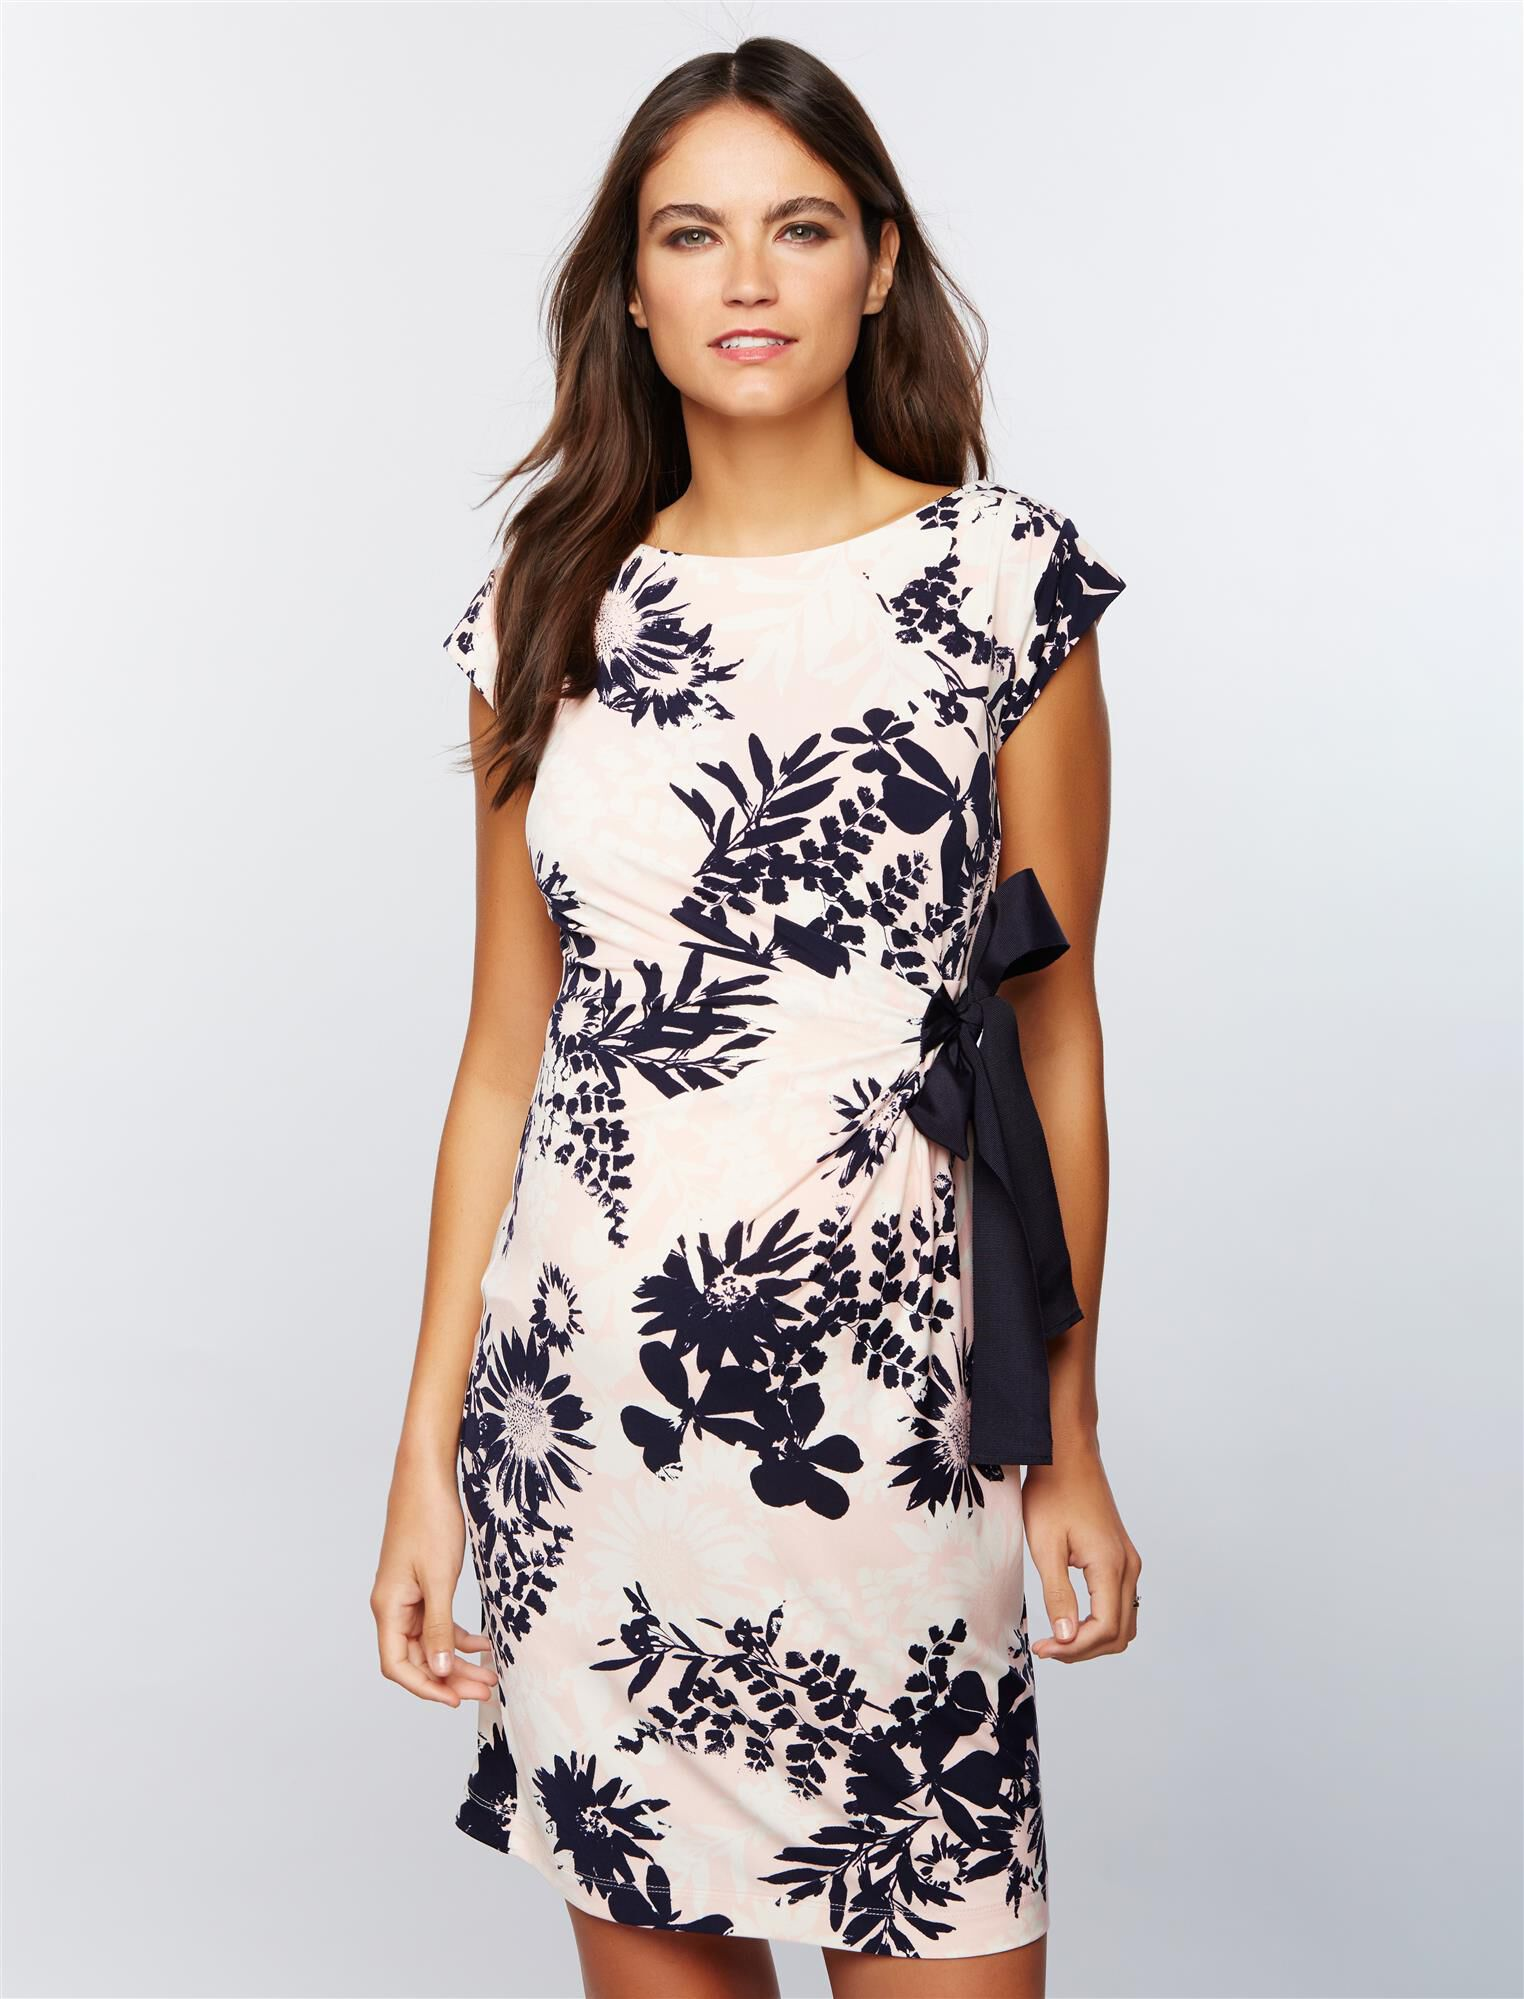 Taylor Side Tie Maternity Dress- Pink/White Floral